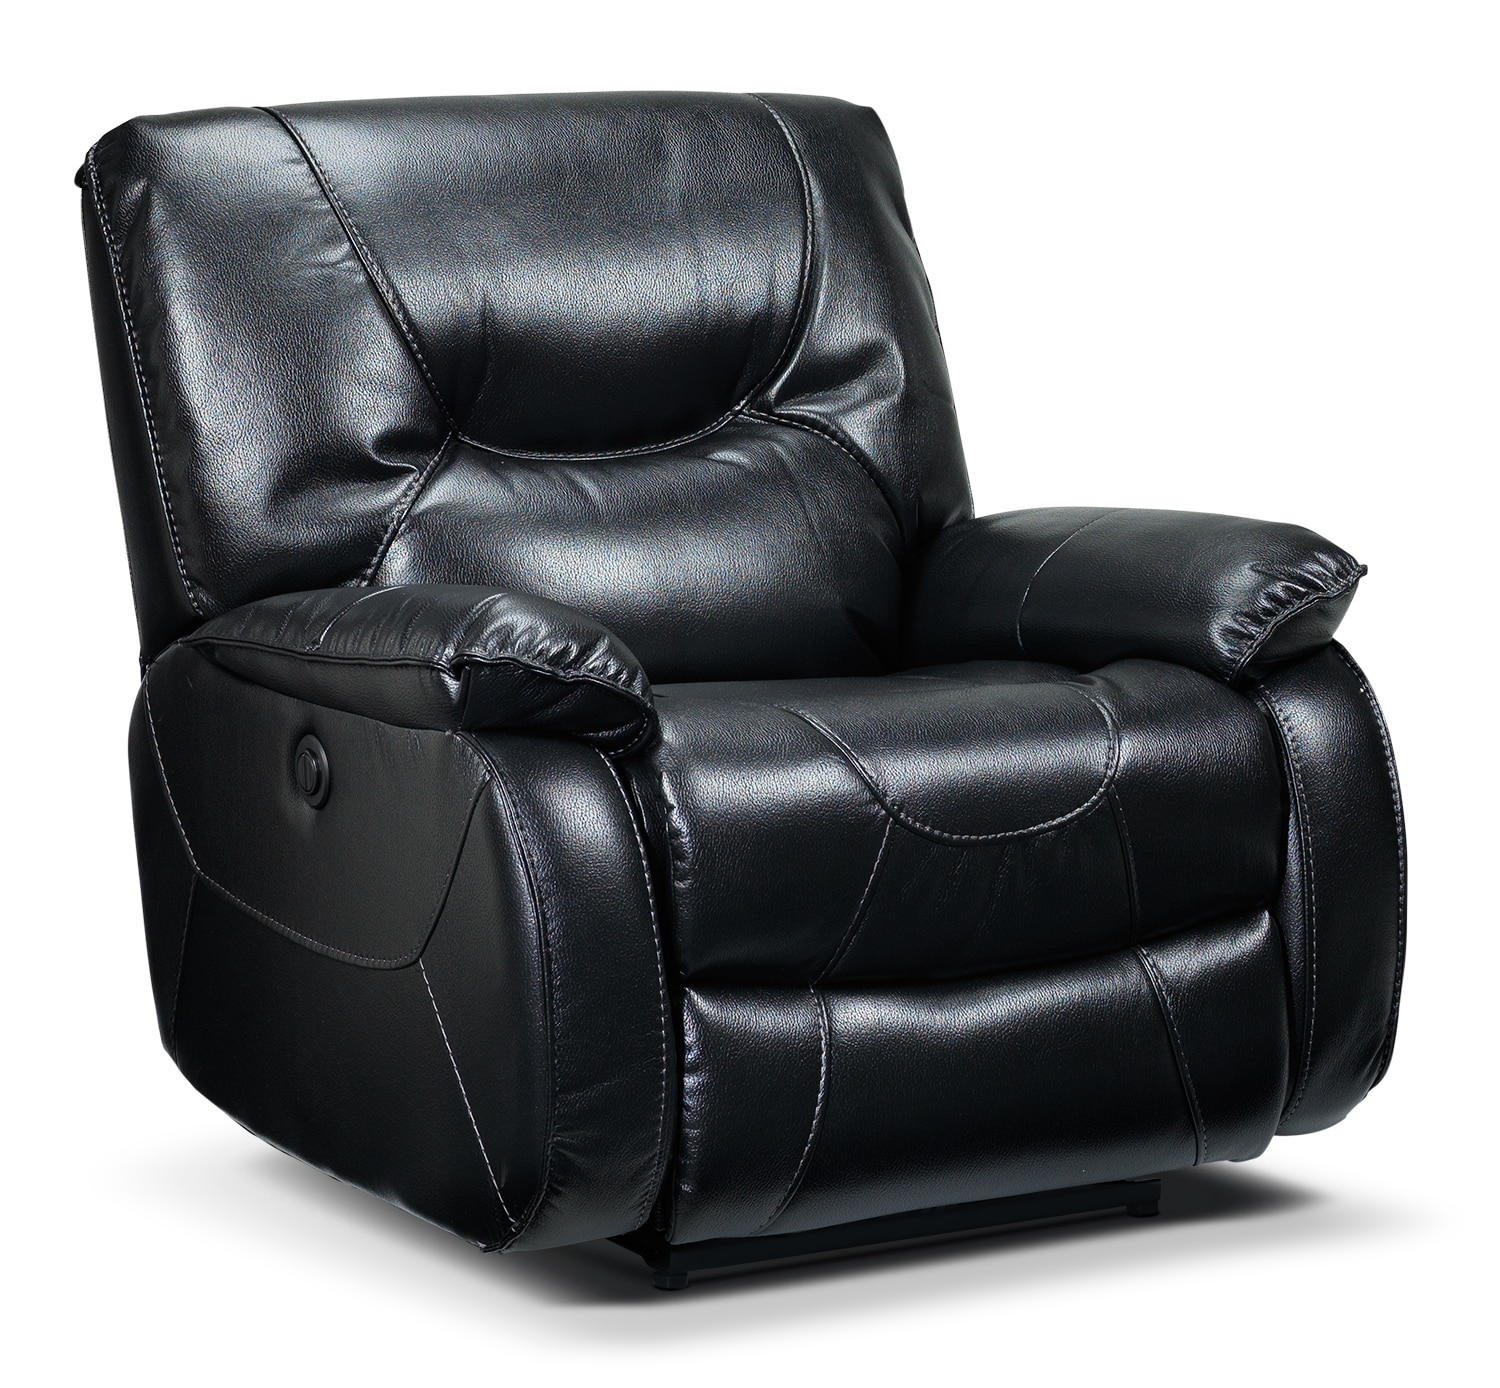 Living Room Furniture - Canton Power Recliner - Black